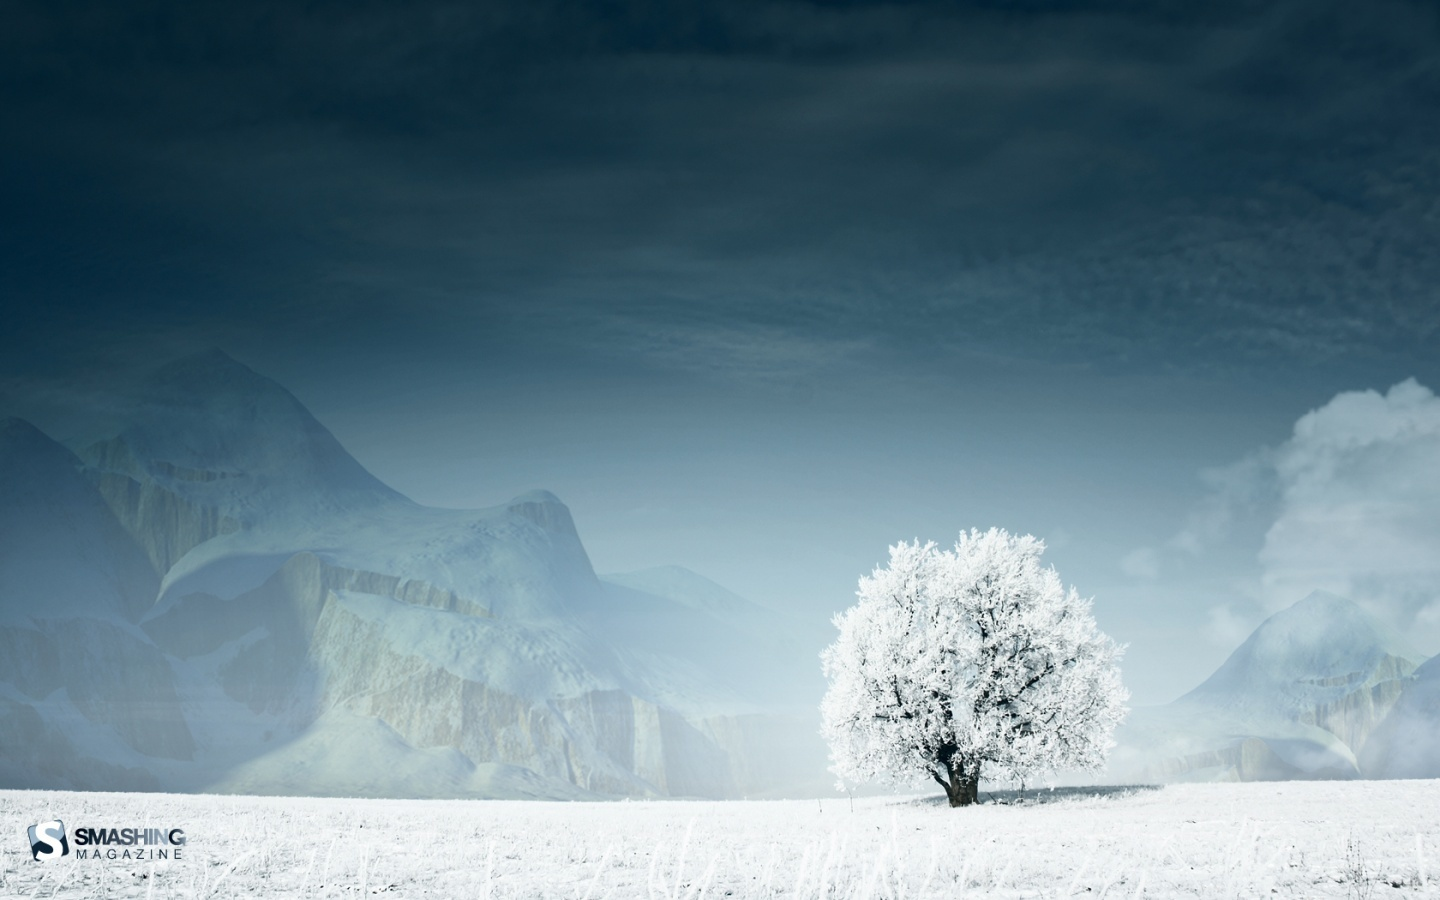 White Wallpaper on Lonely White Guardian Hd Wallpaper   General   874286